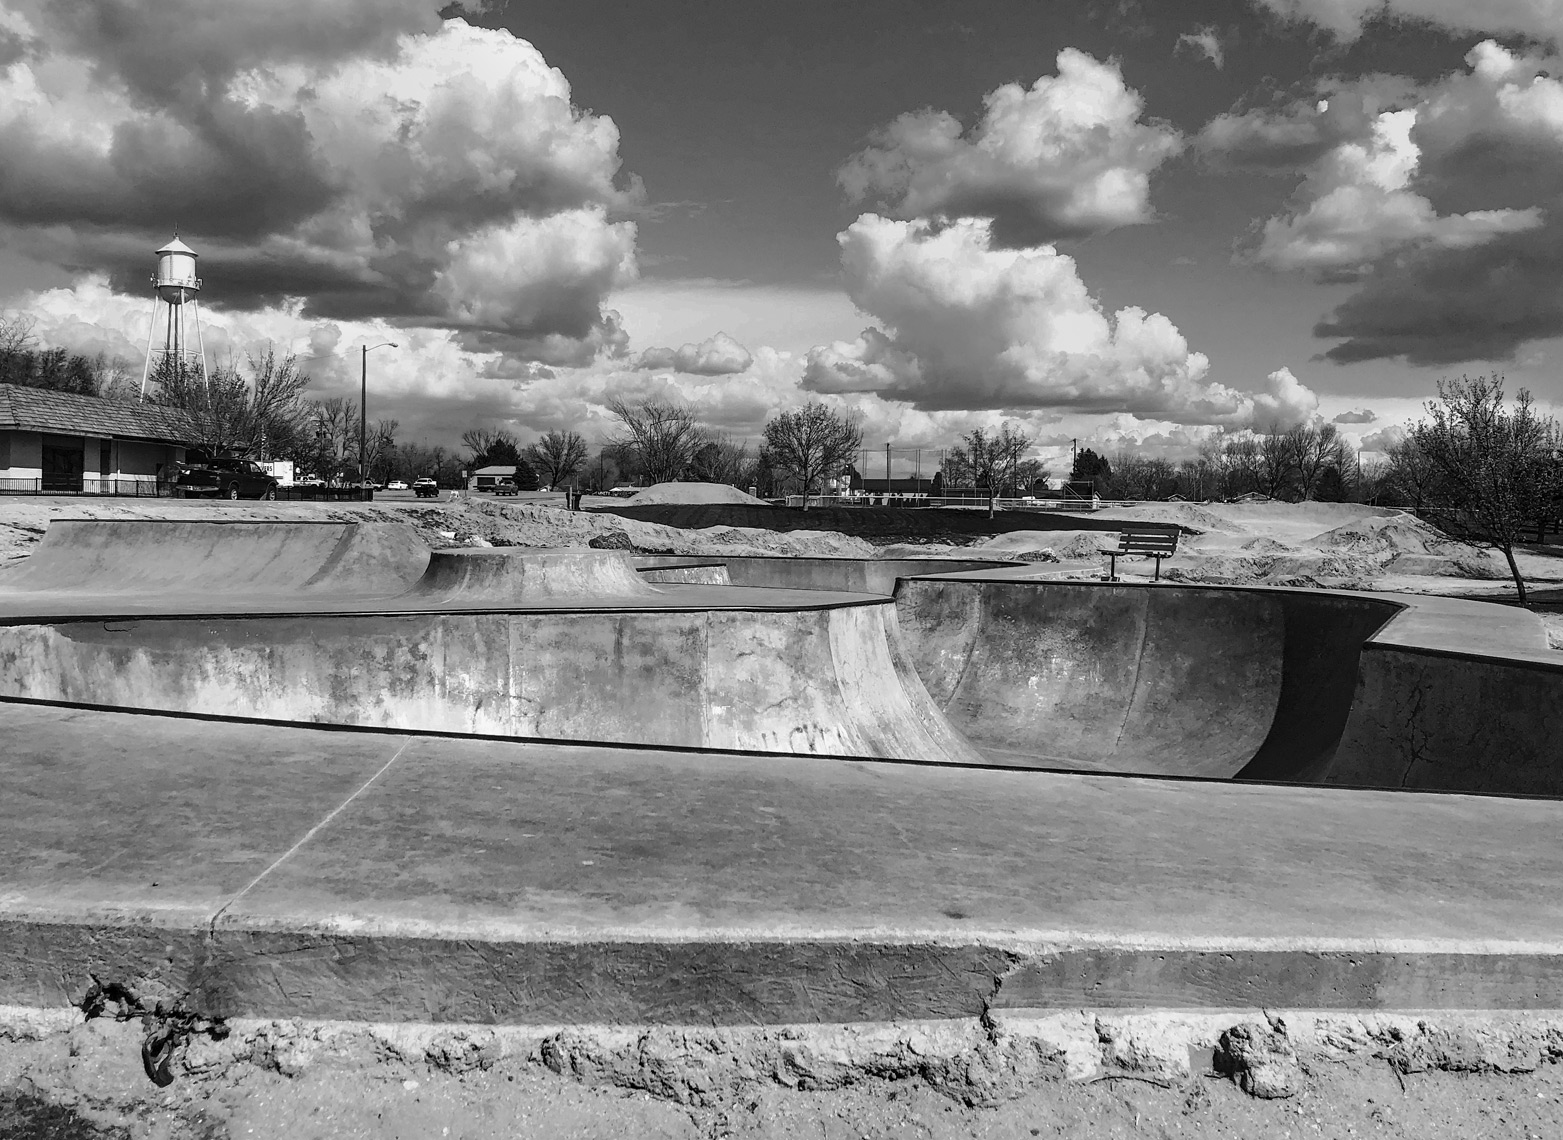 RoadTripping_SkateparkProject_Park23_Town_Retouched_Web